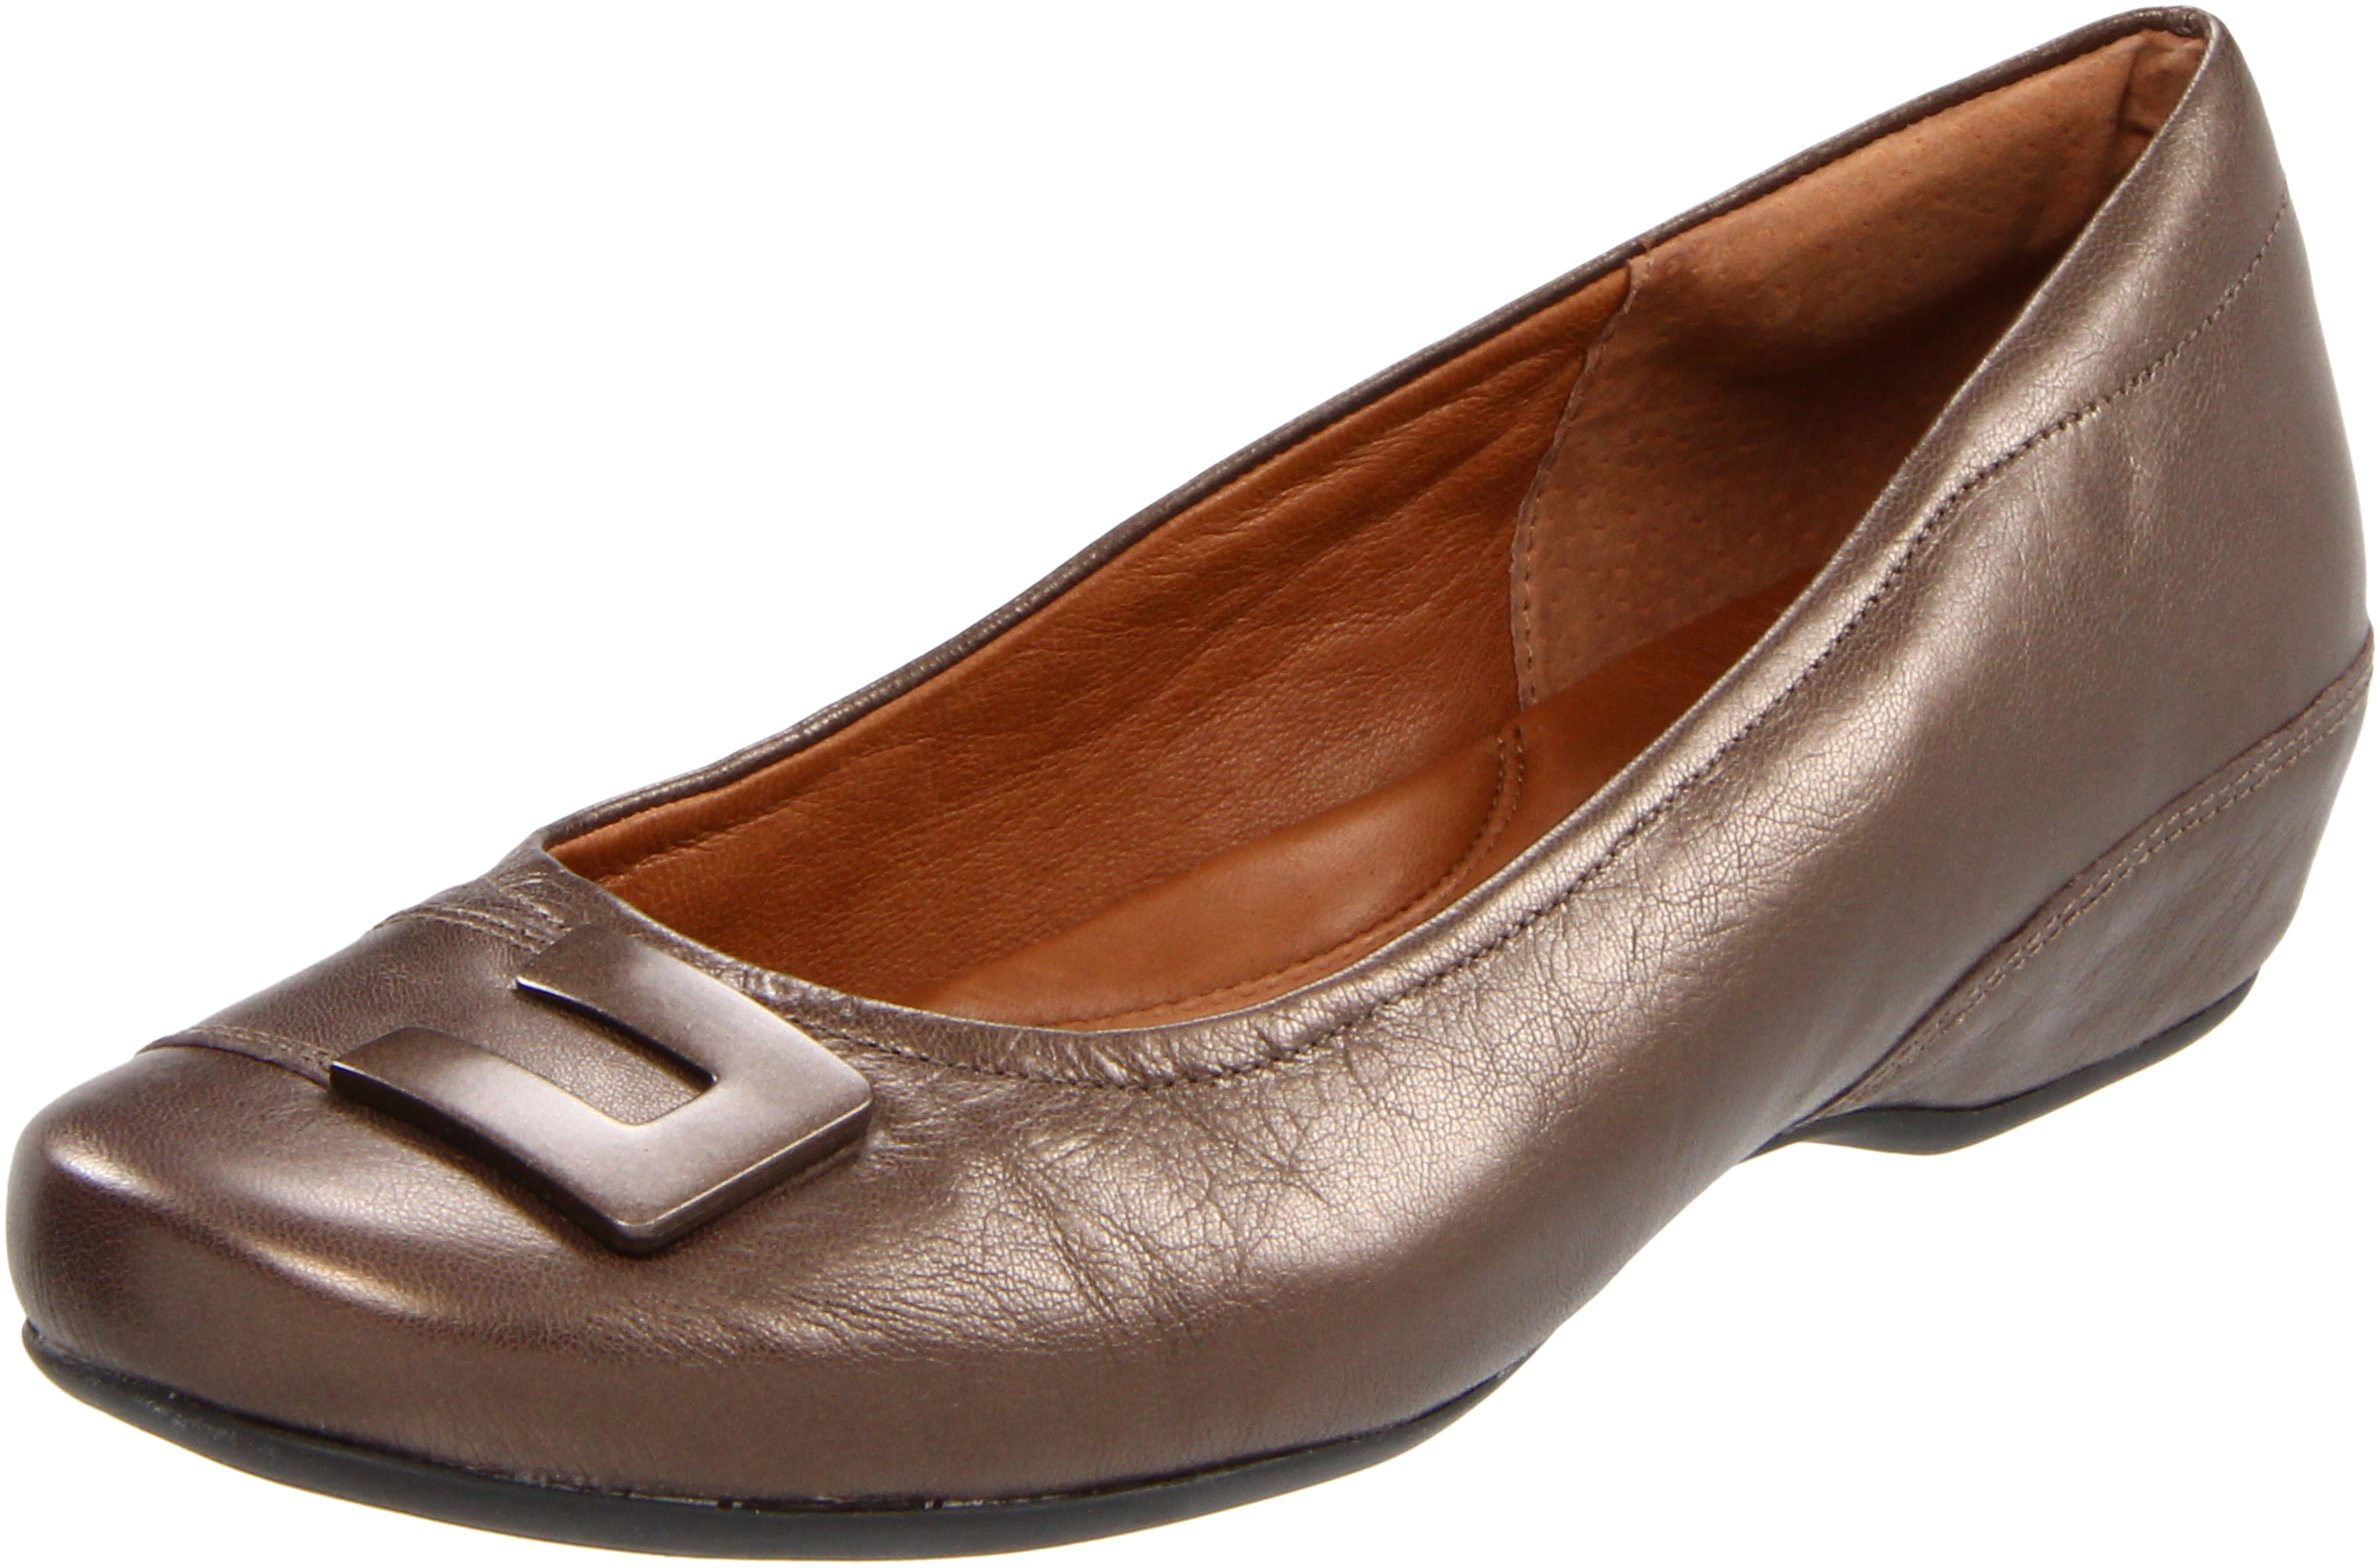 Clarks Women's Concert Choir Dress Shoes,Brown Metallic Leather,5 M US